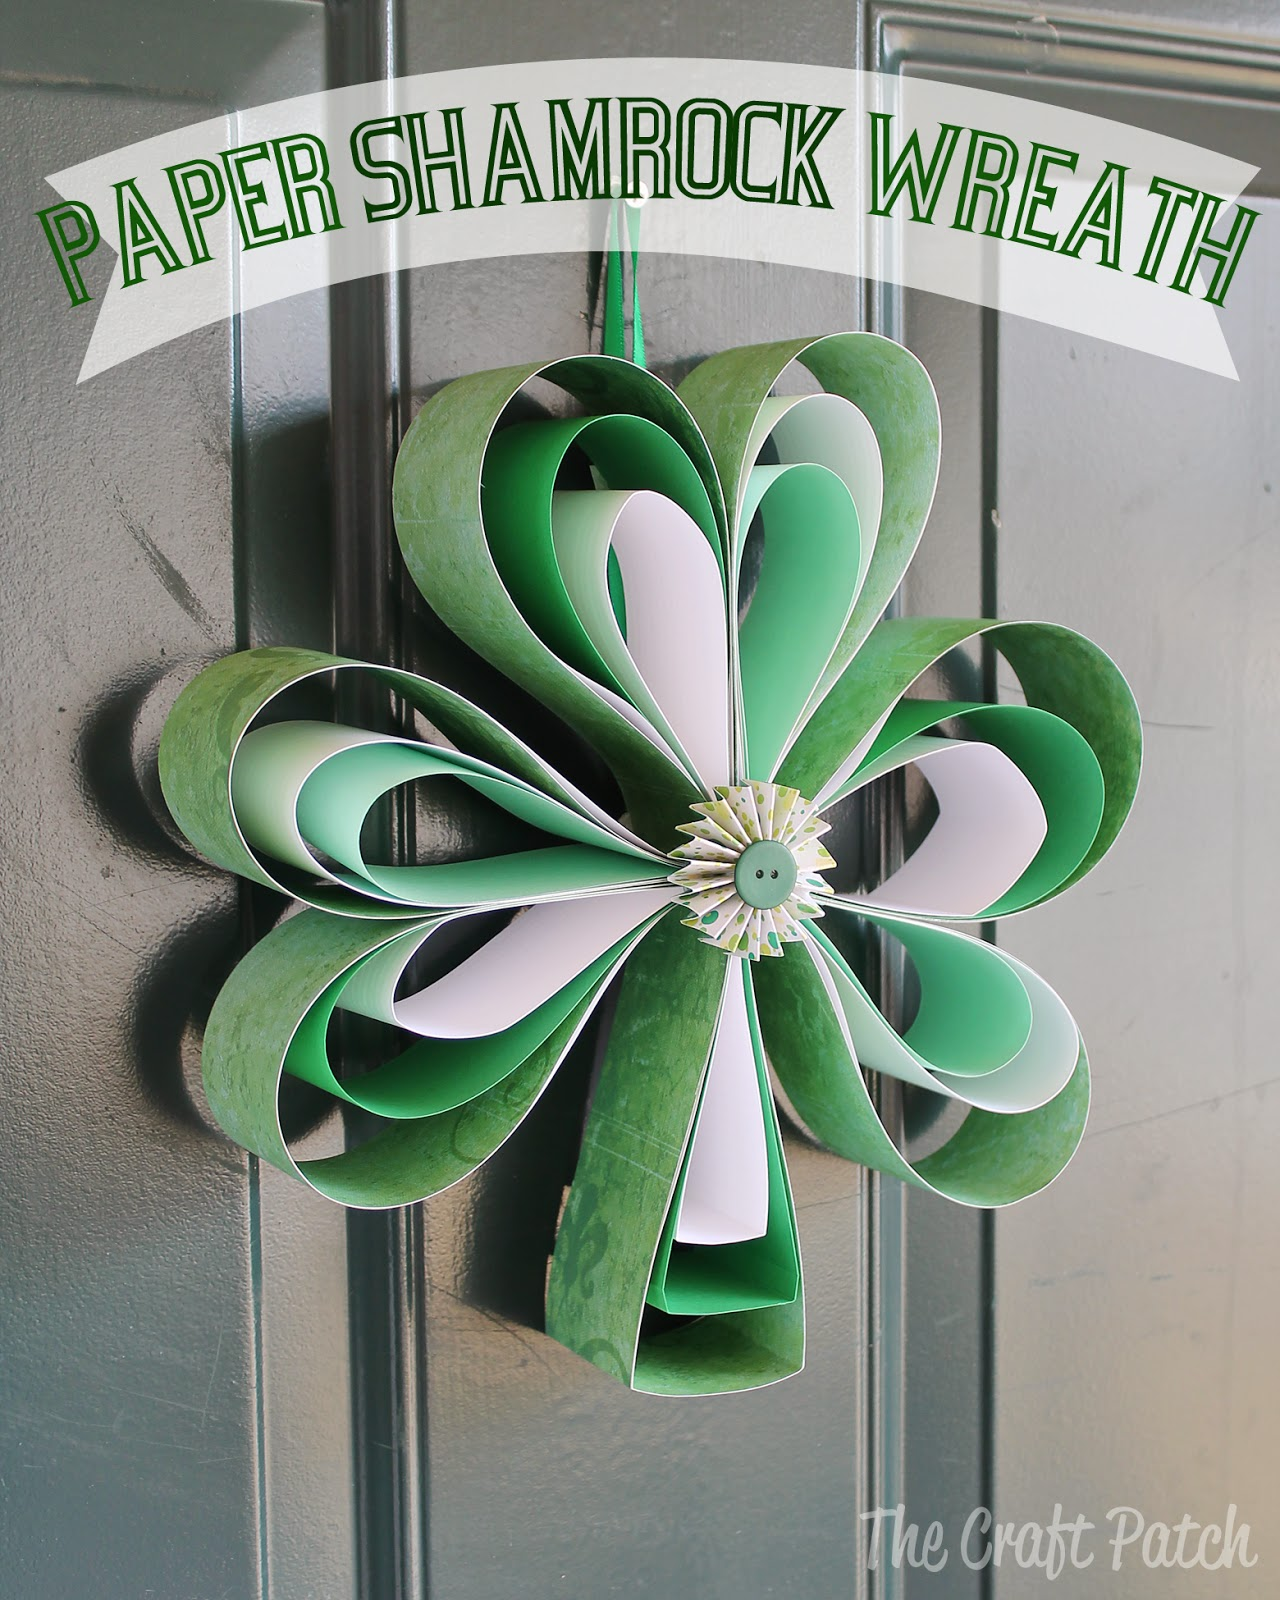 The Craft Patch: Paper Shamrock Wreath